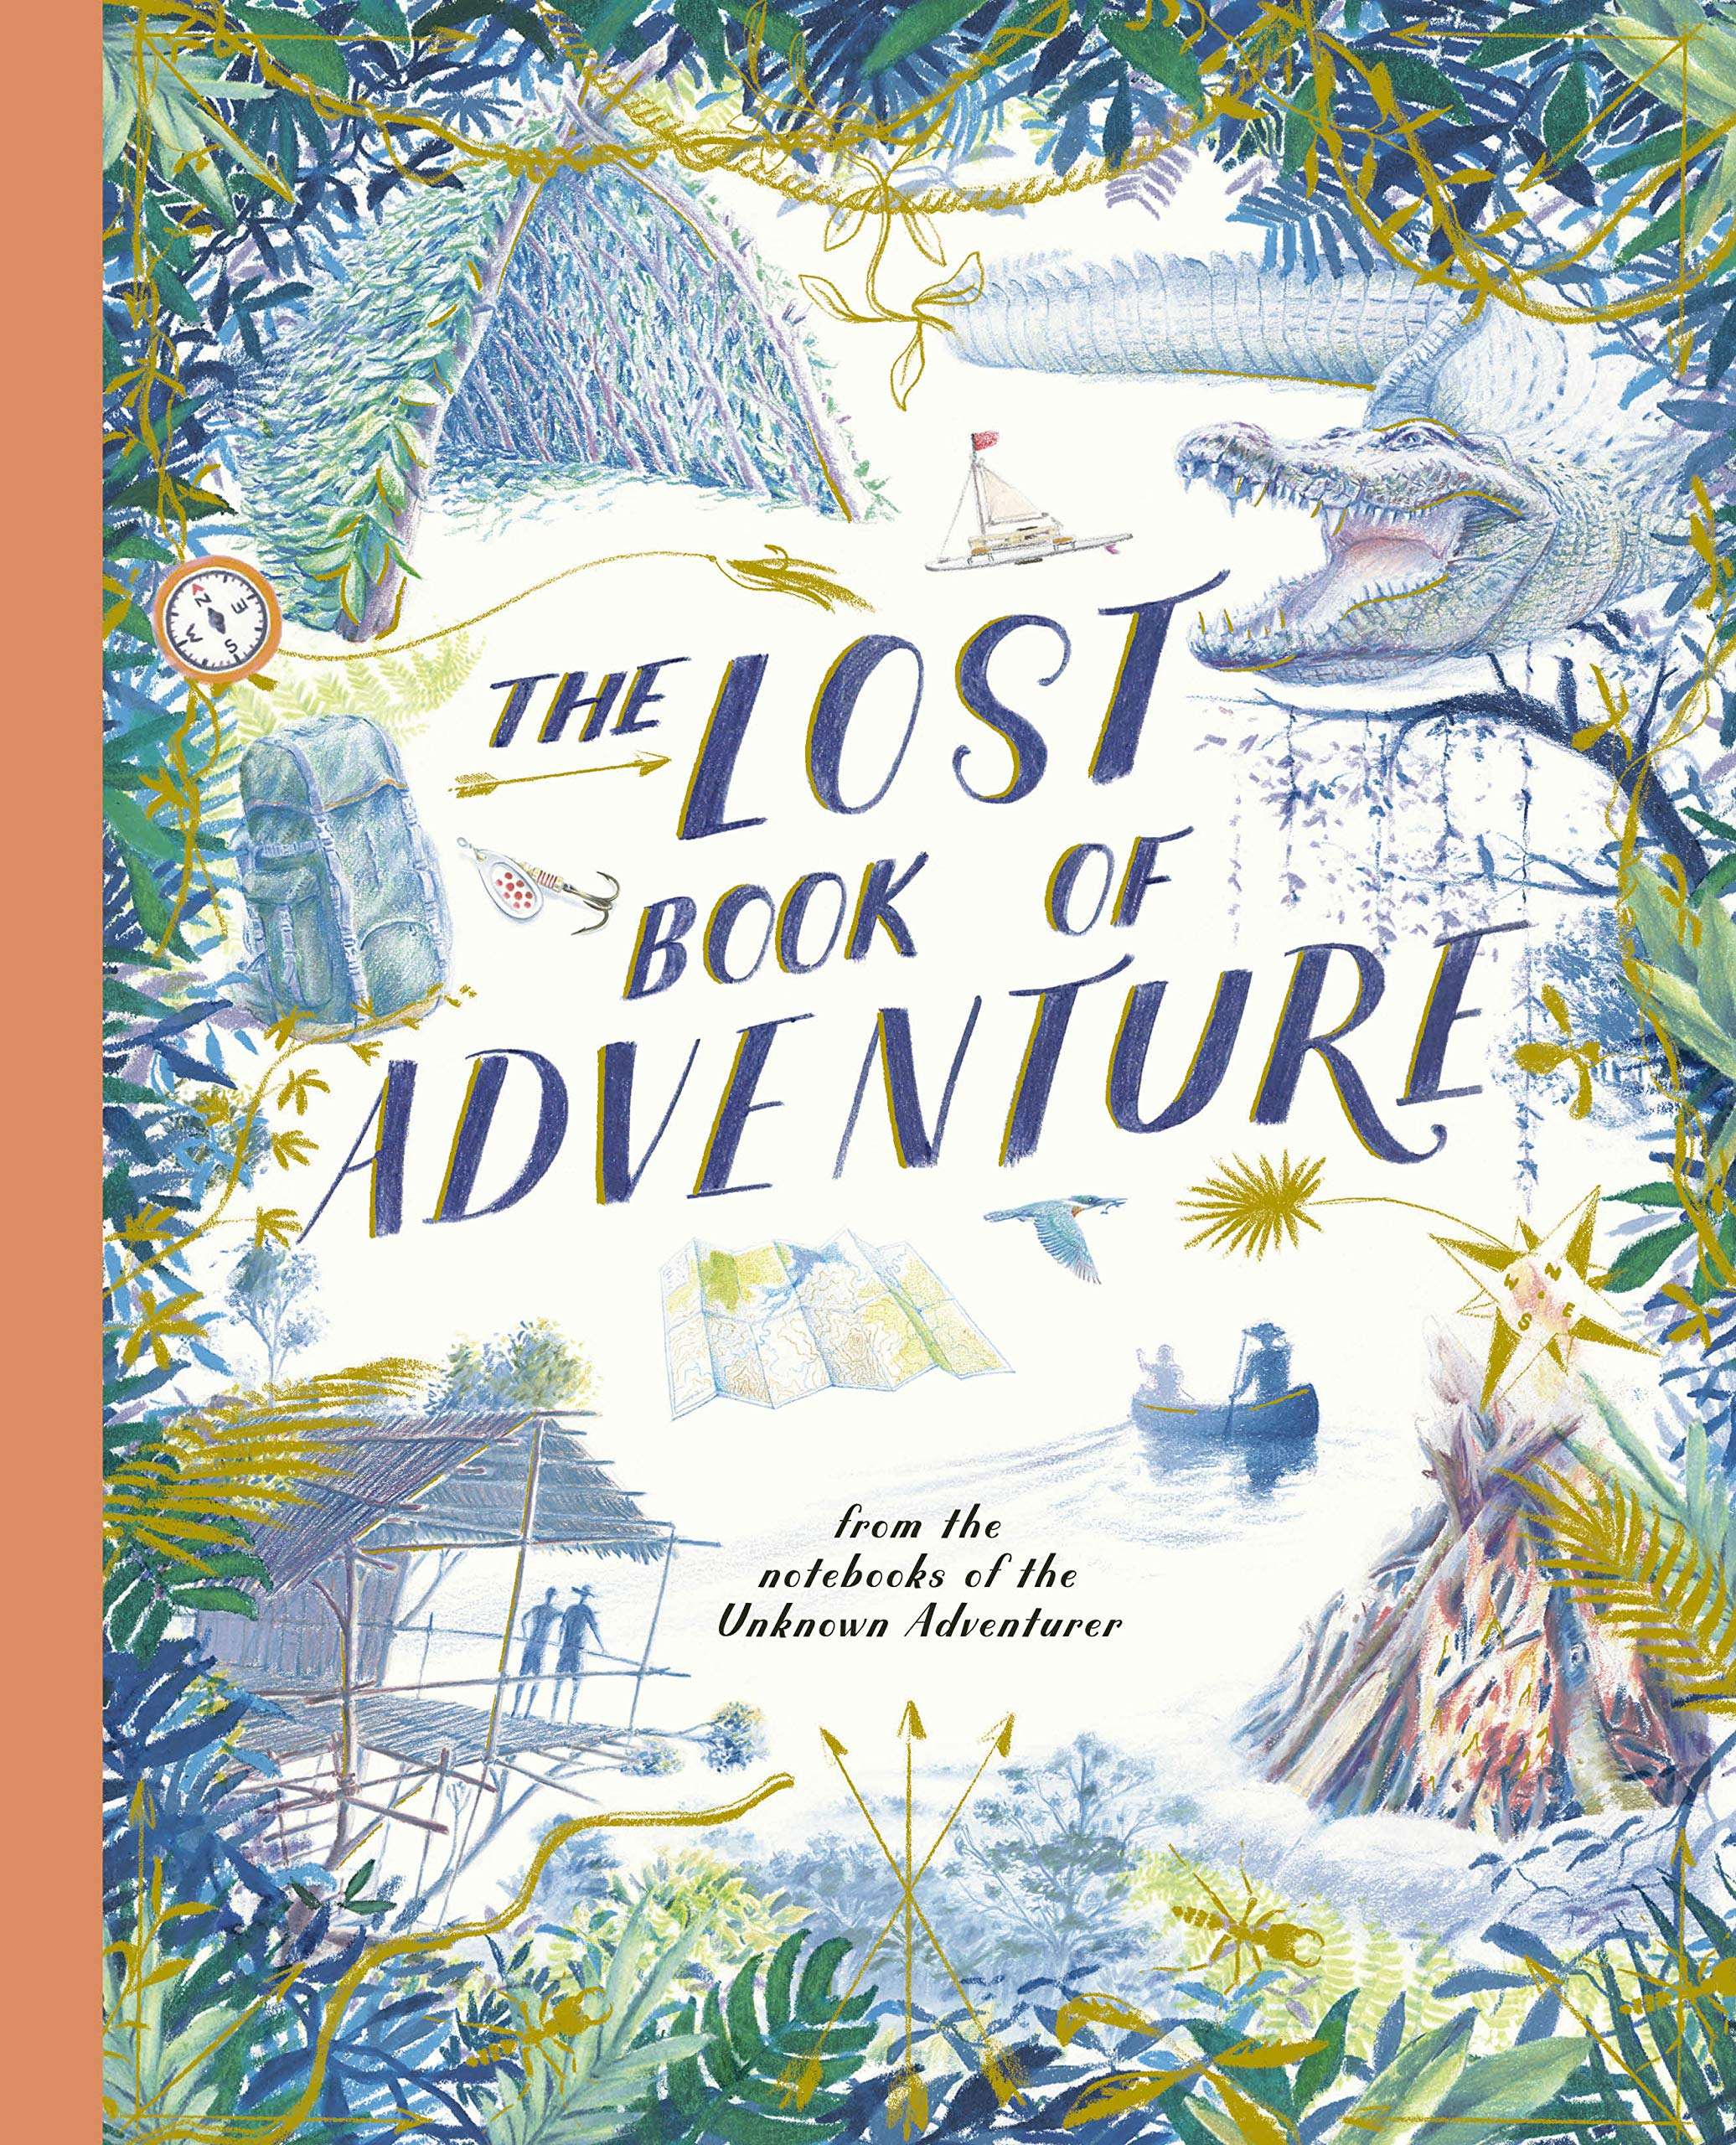 Our TOP Five… History Books (for kids) - The Lost Book of Adventure: from the notebooks of the Unknown Adventurer by Teddy Keen